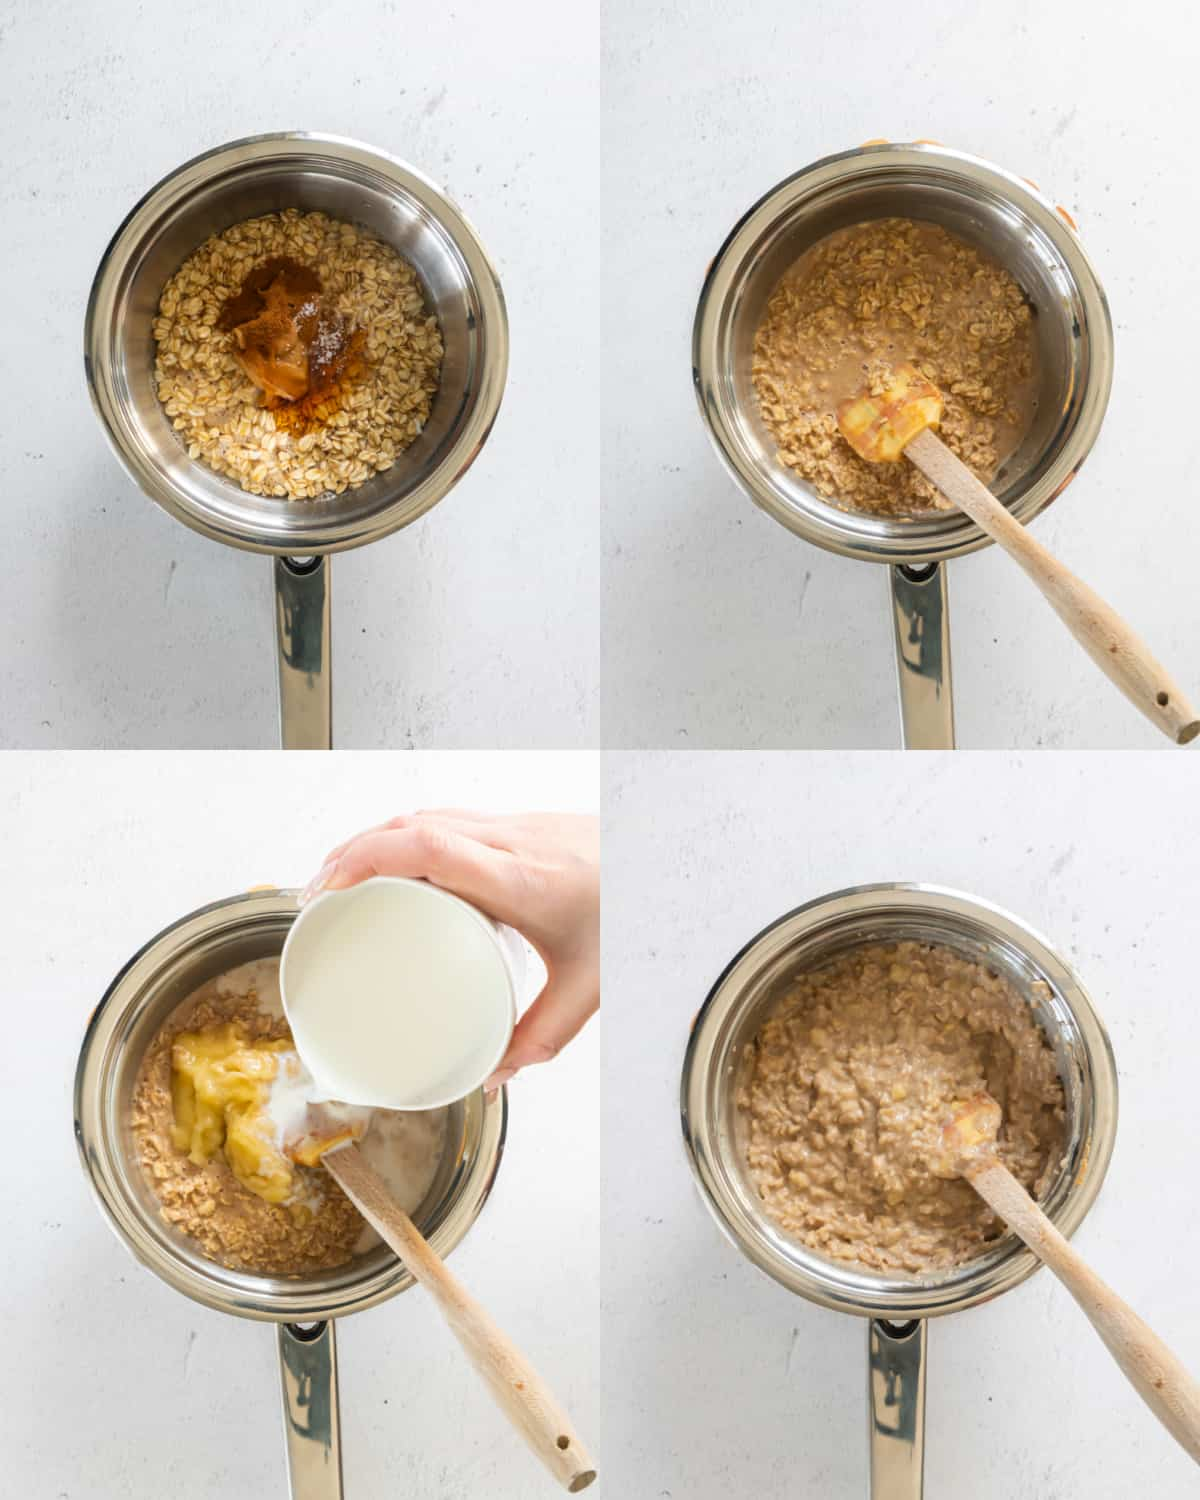 mixing together oatmeal ingredients in a saucepan for cooking